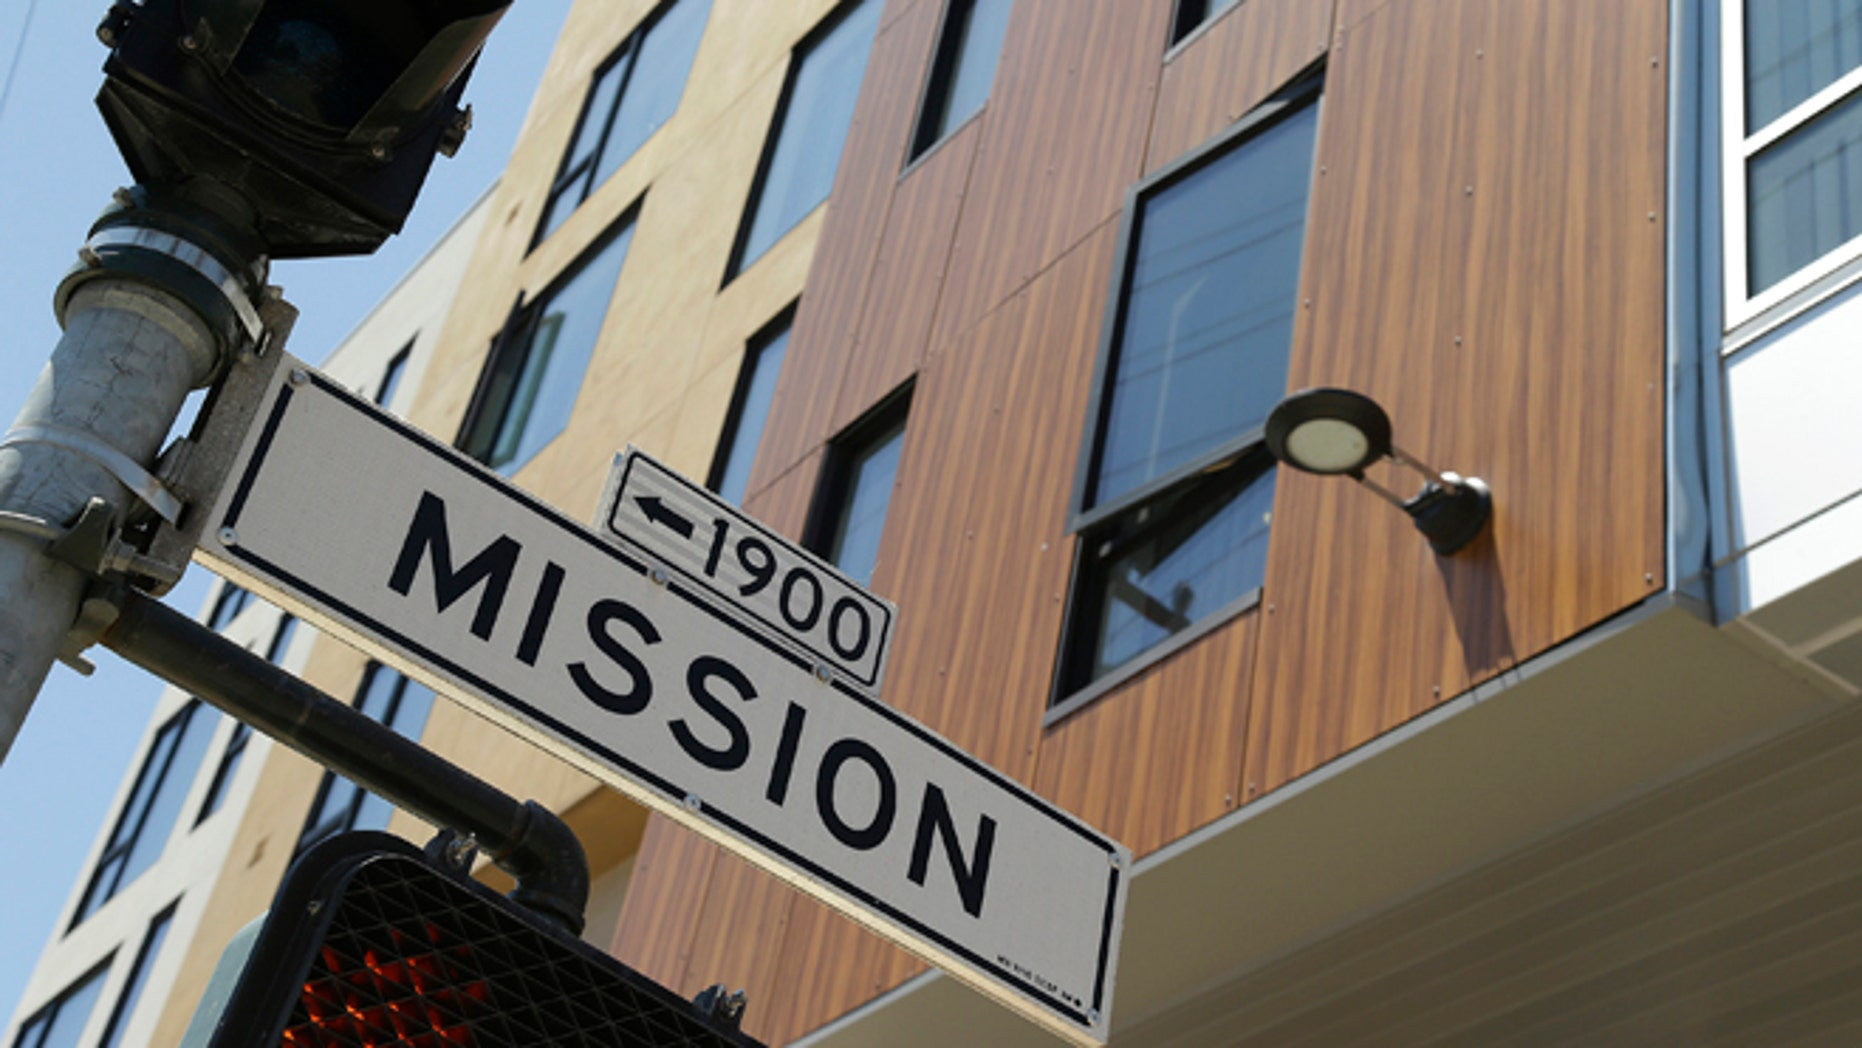 A street sign hangs outside a new apartment building on Mission Street, Tuesday, June 2, 2015, in San Francisco. Finding a place to live has become so expensive and emotional that city supervisors are considering a 45-day moratorium on luxury housing in the Mission District, which has long been one of the most diverse neighborhoods in the city. (AP Photo/Eric Risberg)